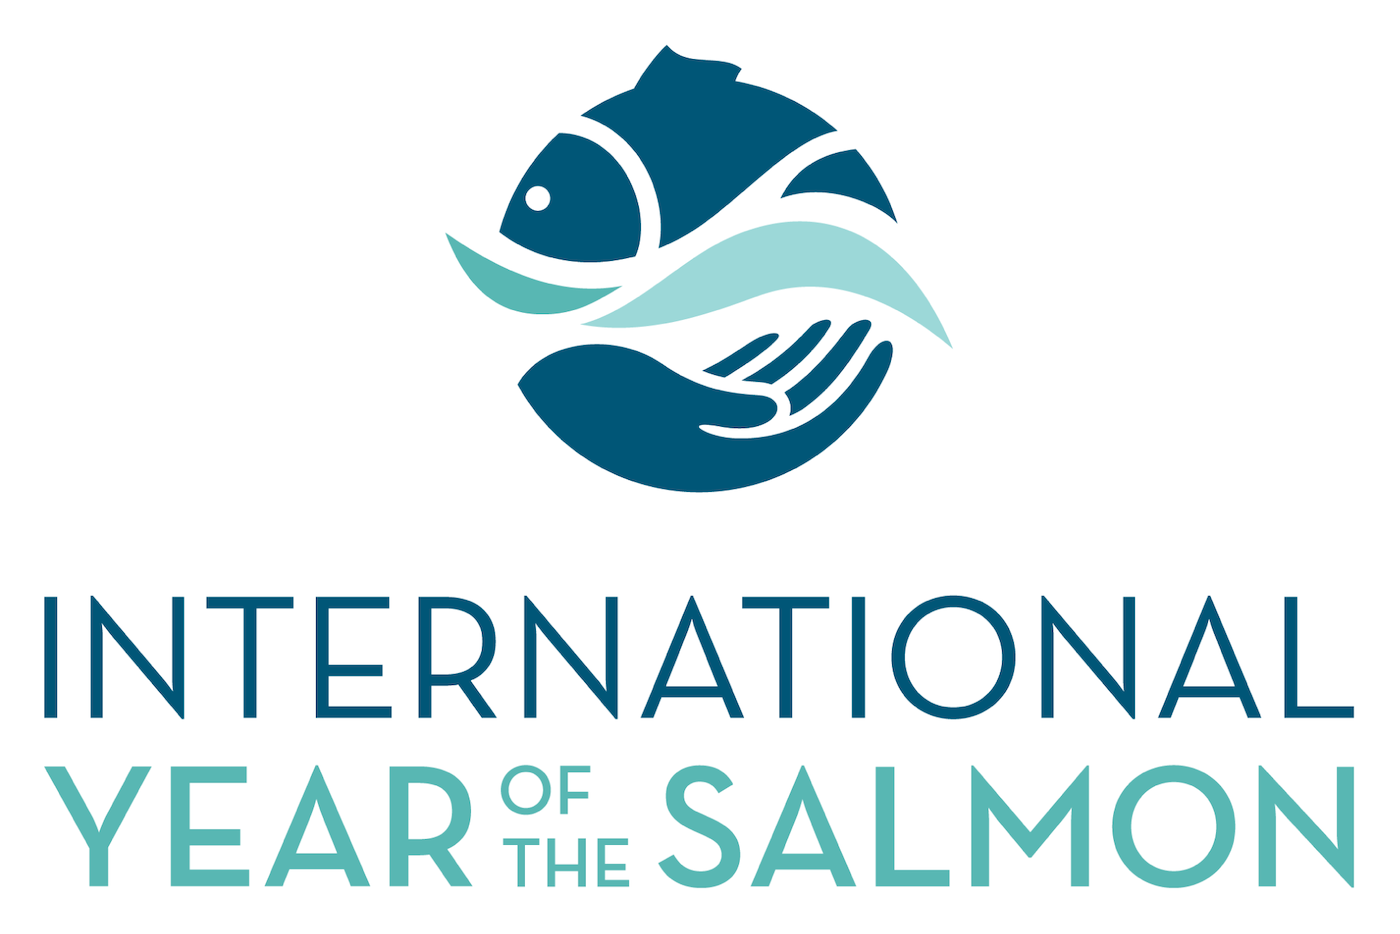 internationial year of the salmonn logo.png